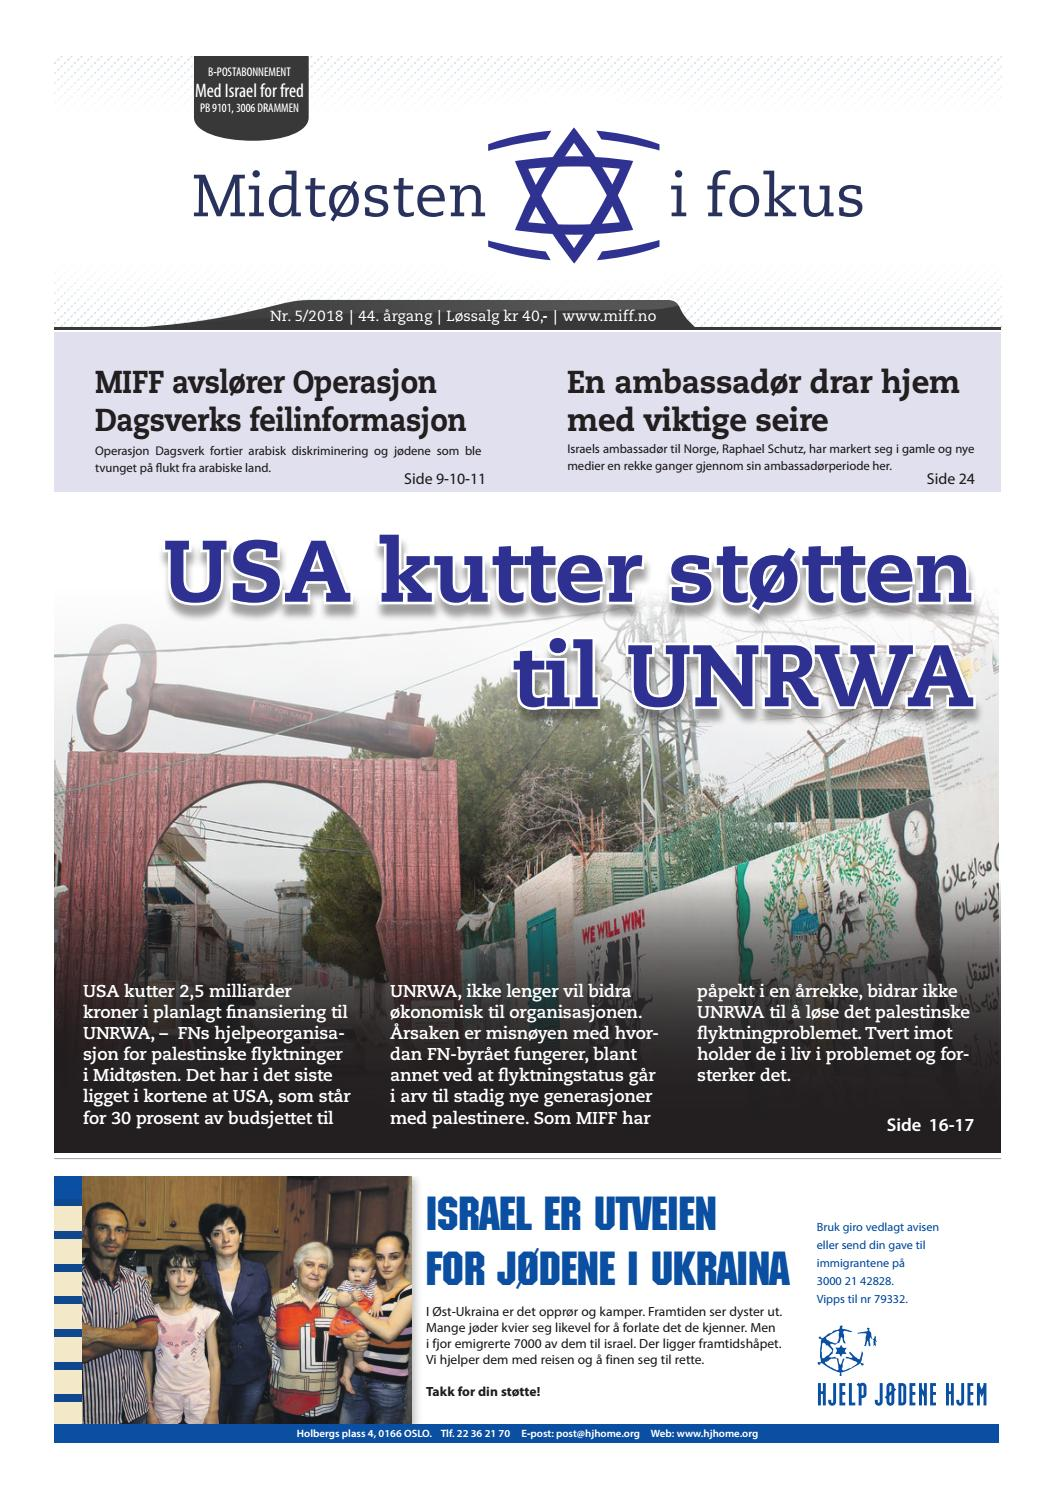 627553cbe 2018-05 Midtøsten i fokus by Med Israel for fred (MIFF) - issuu